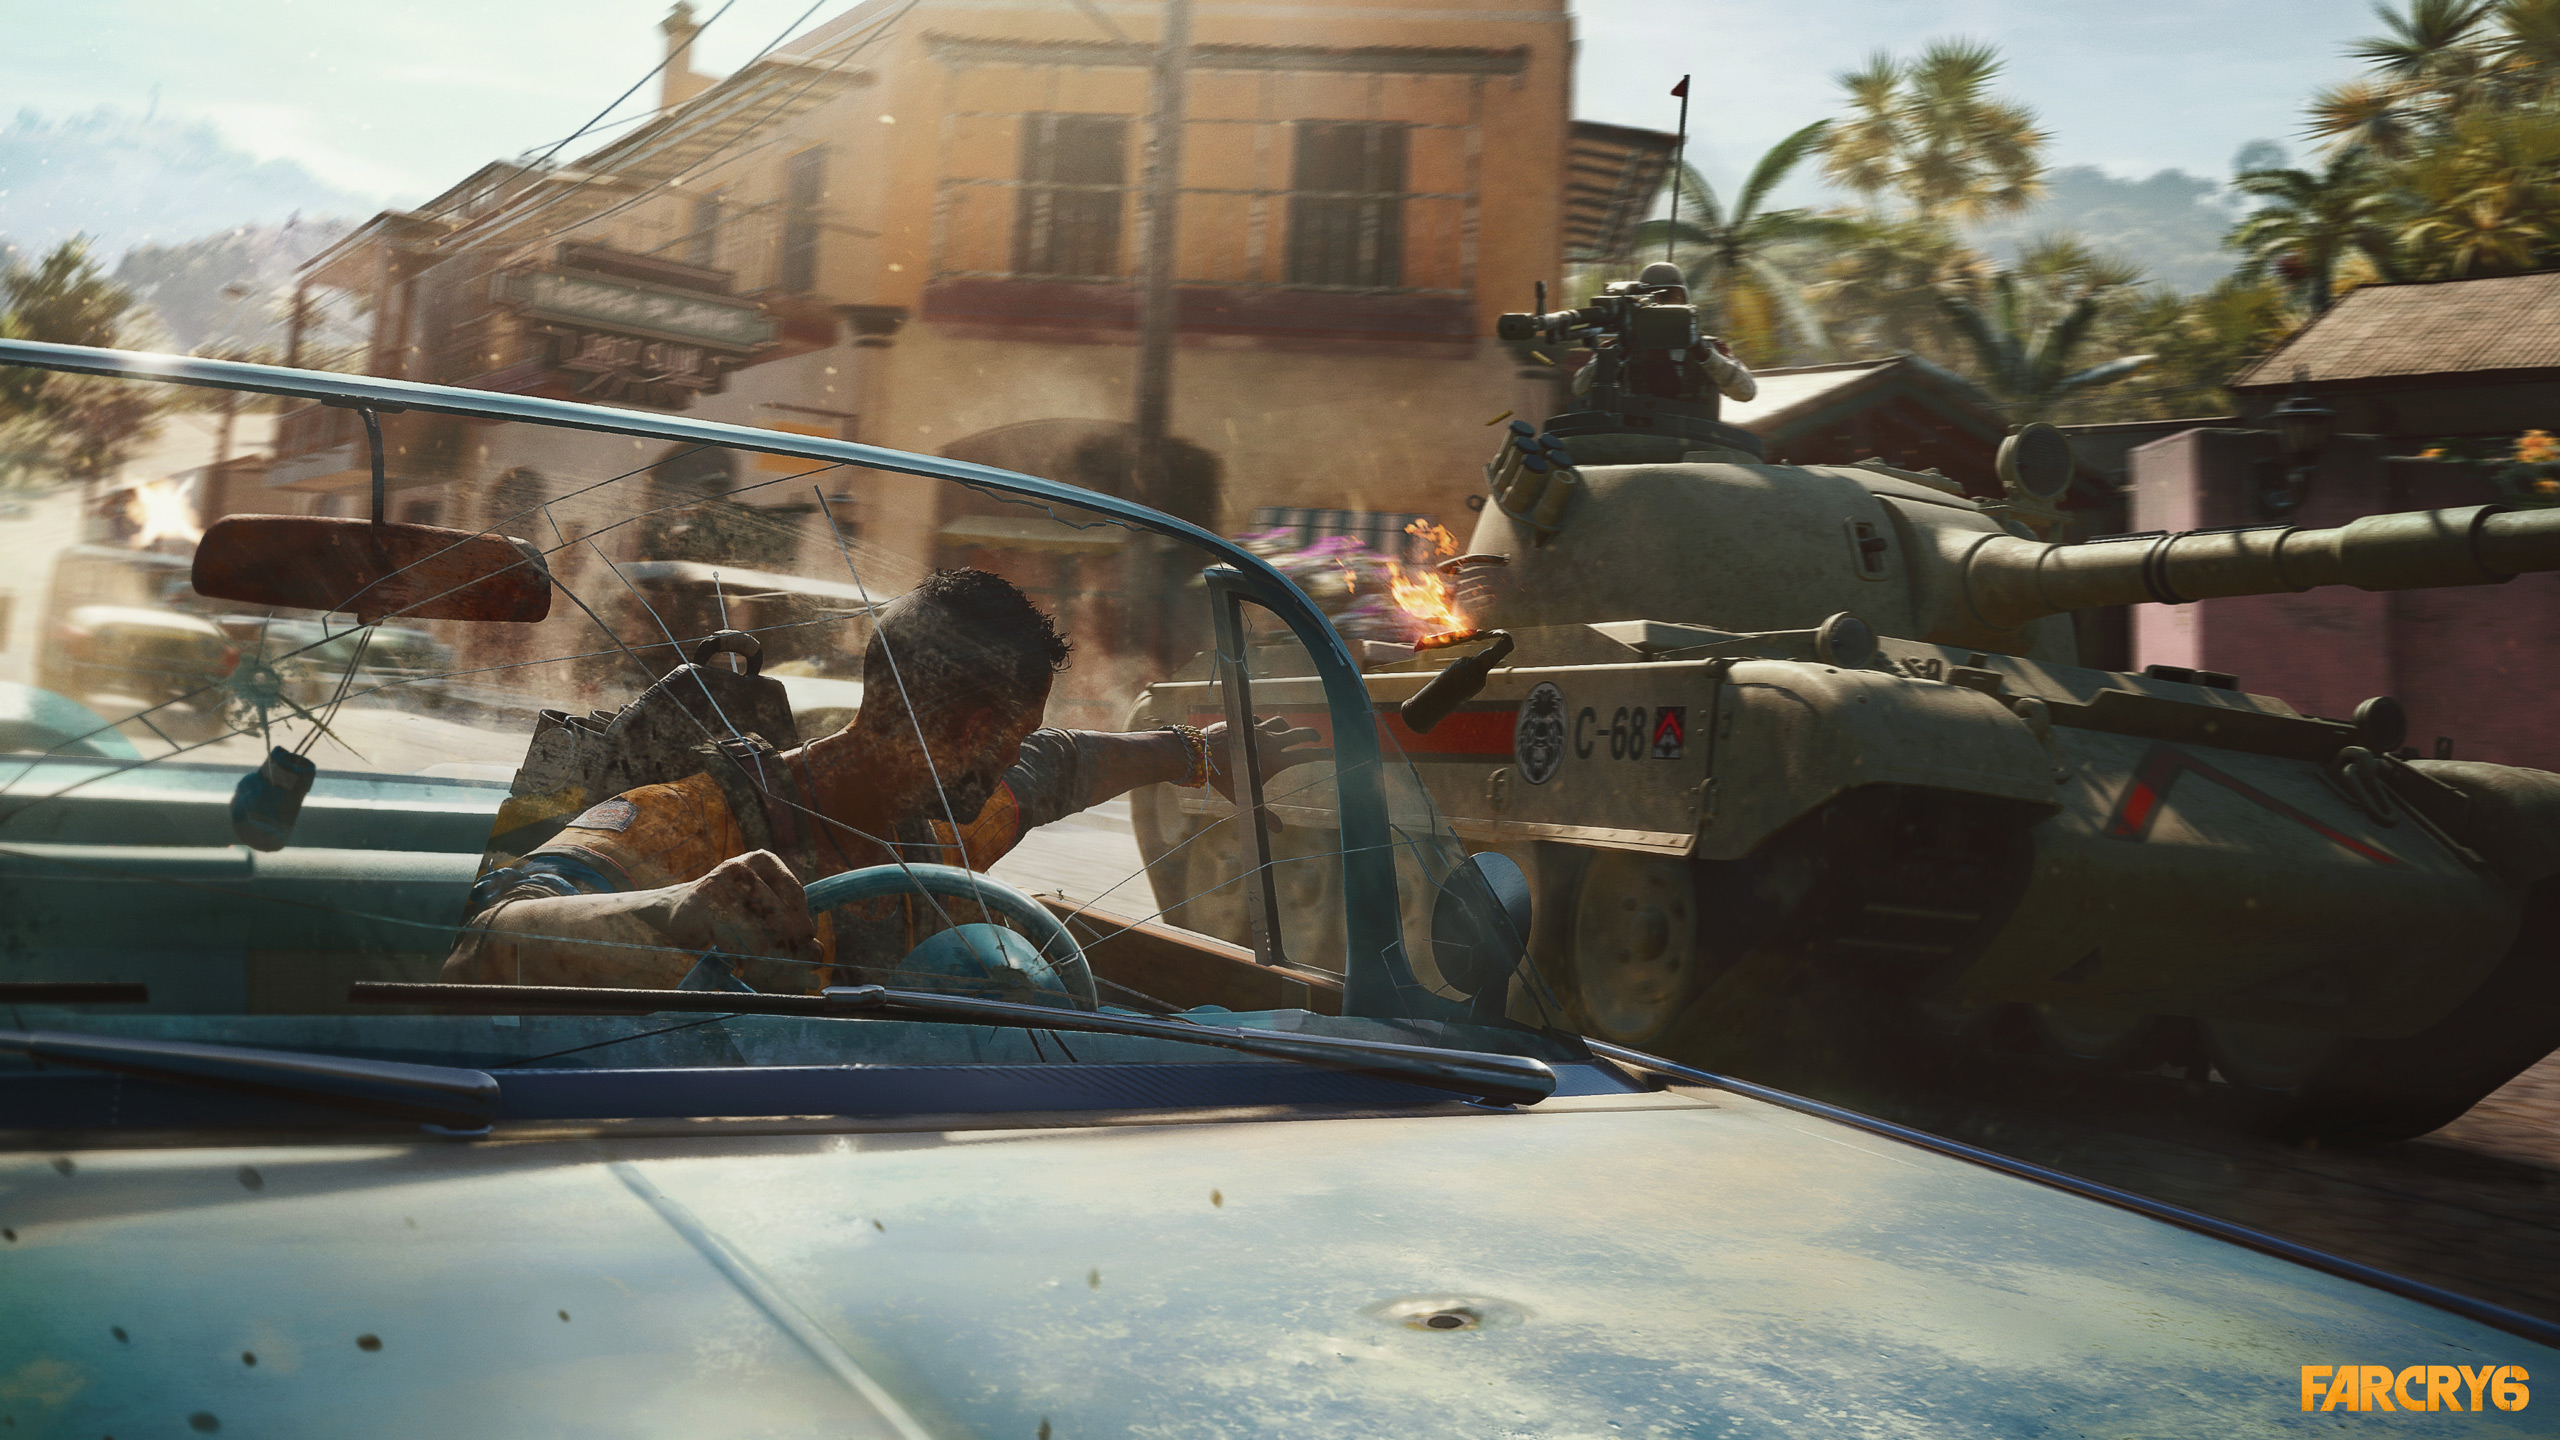 Far Cry 6 gets October 2021 release date | Shacknews